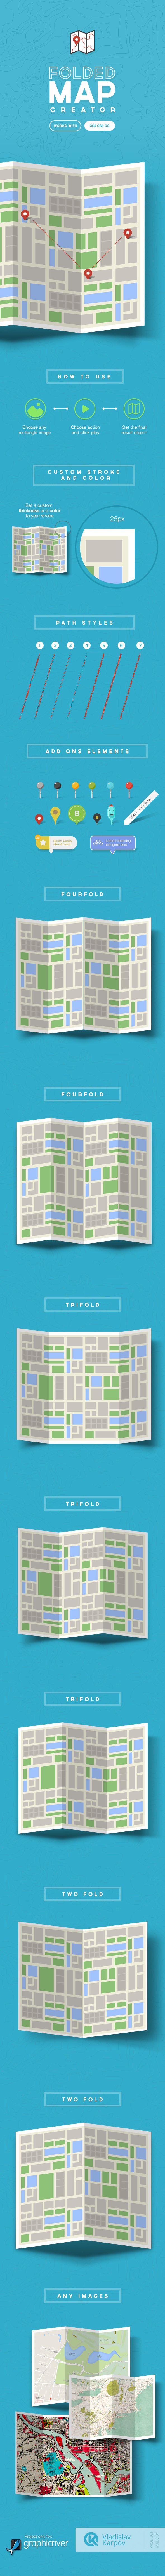 GraphicRiver Folded Map Creator 10143199